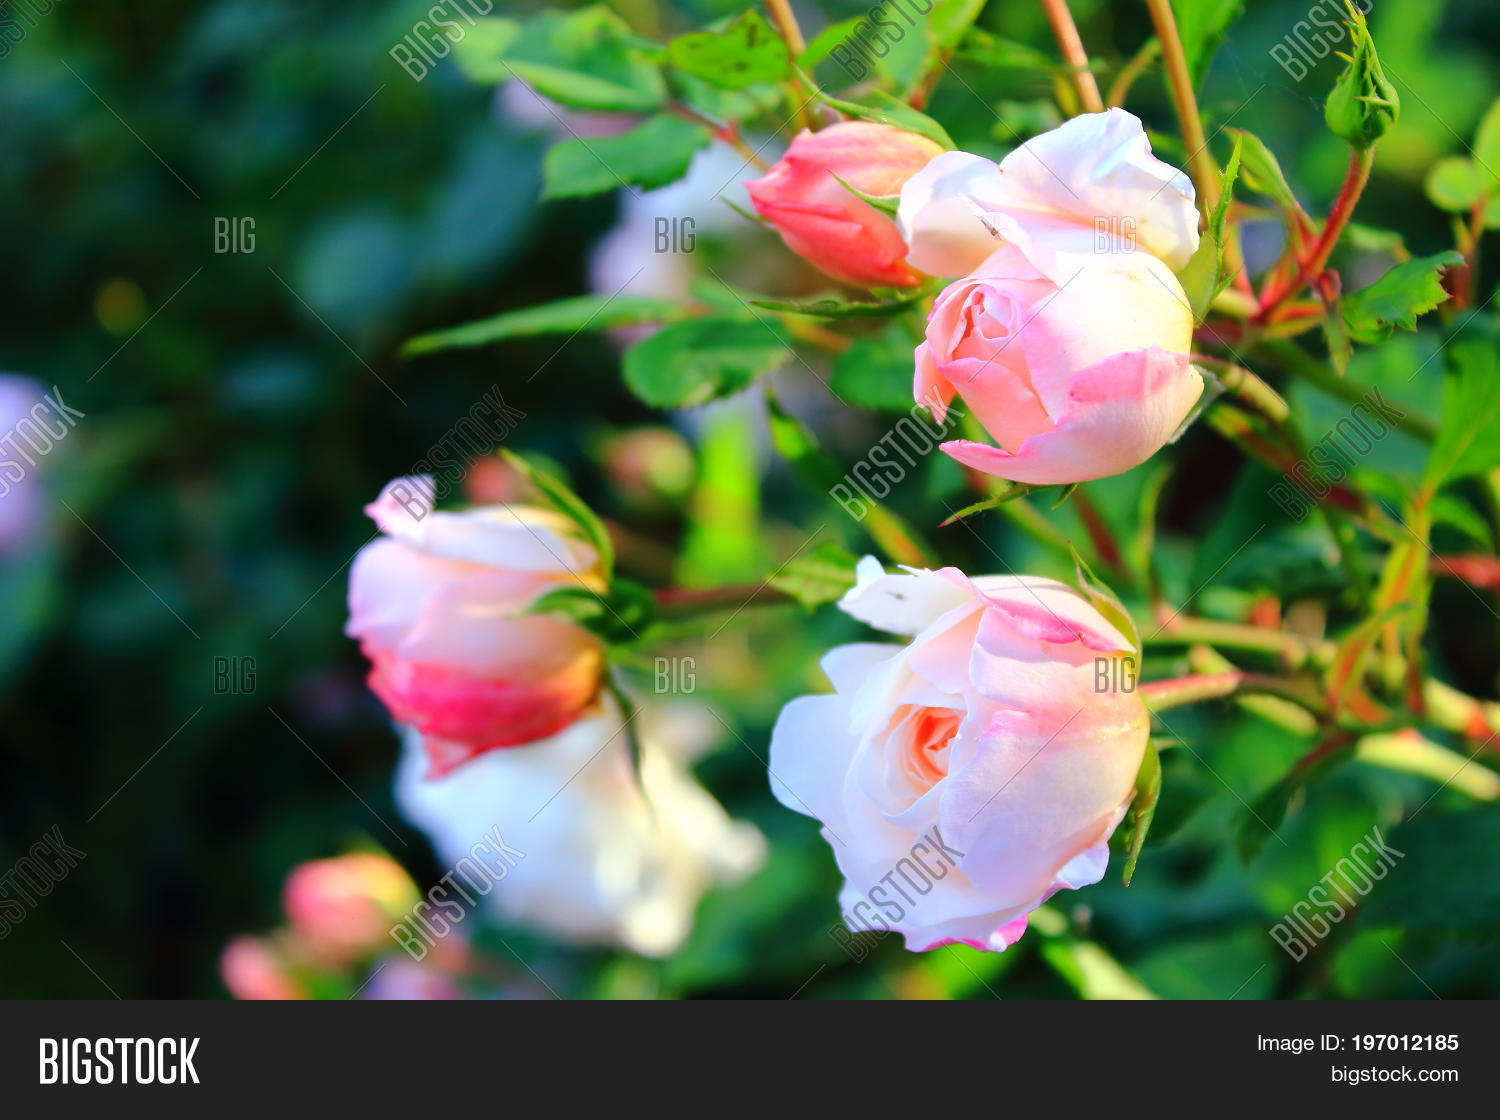 Flowers 8 Marh Image Photo Free Trial Bigstock